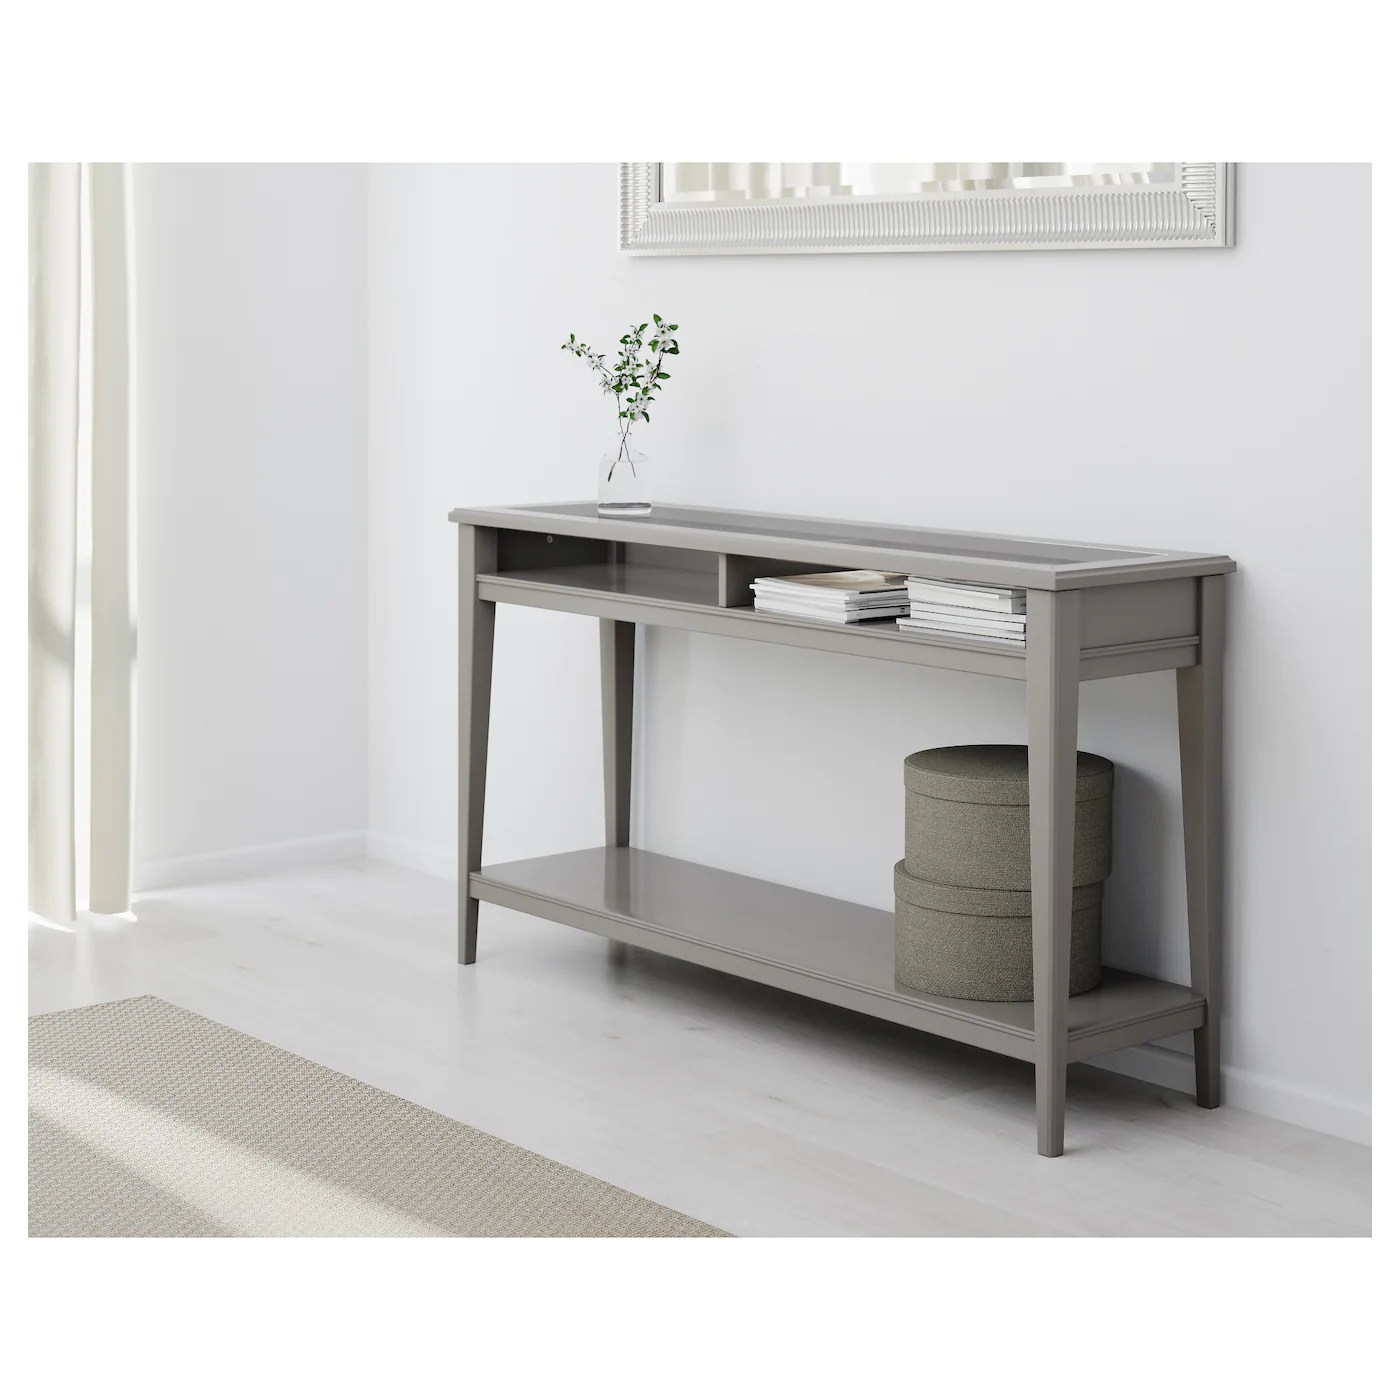 Table Carree Ikea Table Console Ikea Liatorp Console Table White Glass 133x37 Cm